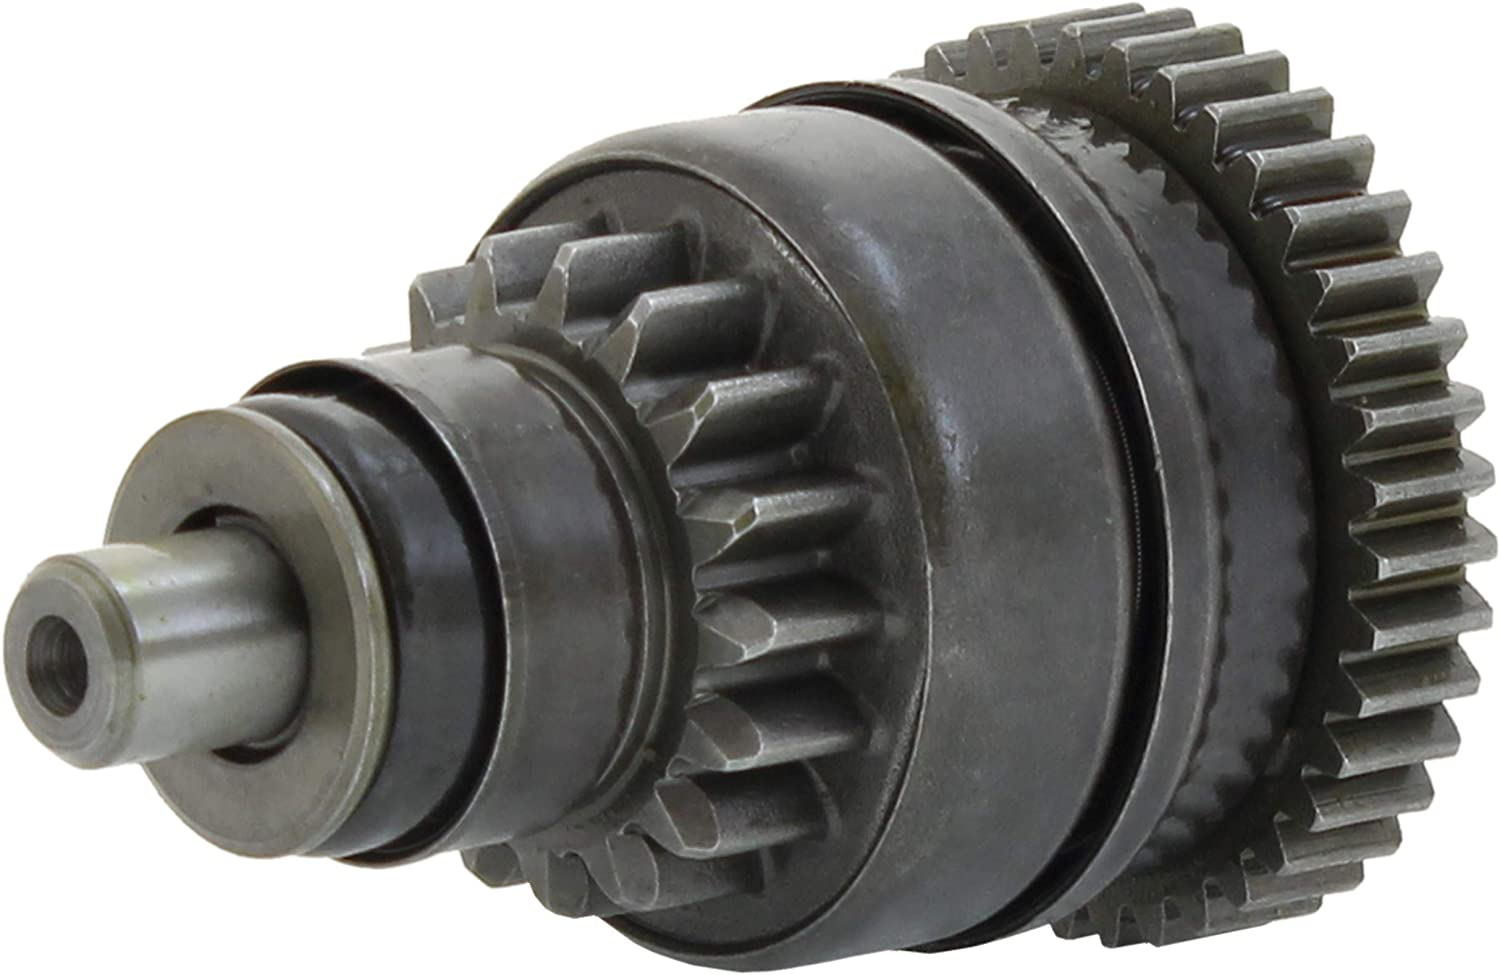 Starter Drive Replacement For Polaris Magnum 325 330 400 500 2x4 4x4 6x6 1995 1996 1997 1998 1999 2000 2001 2002 2003 2004 2005 2006 3085394 3087030 ATV NEW